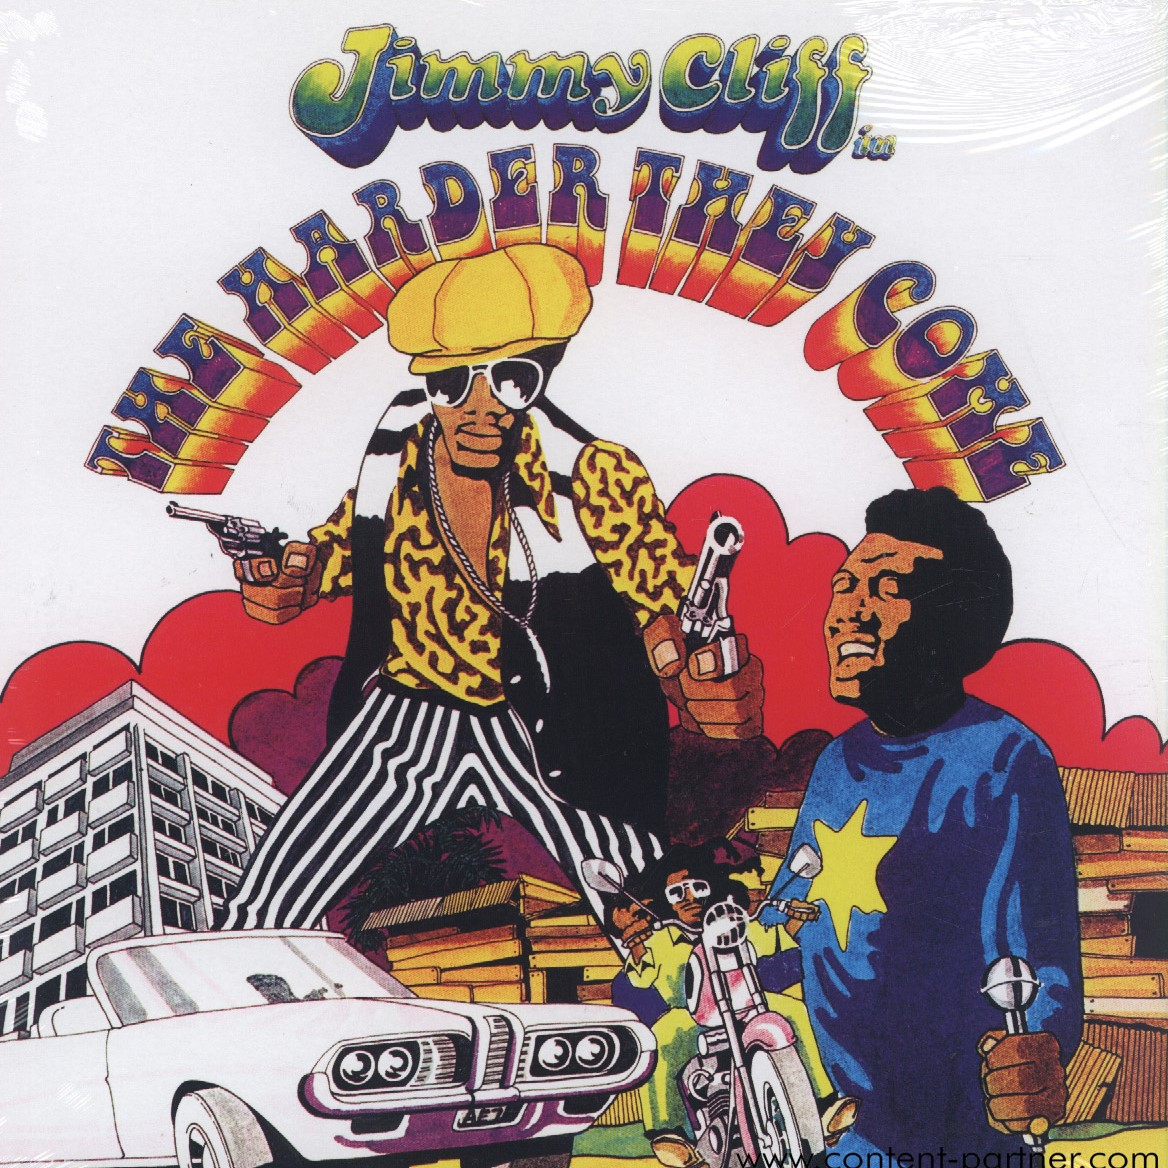 Jimmy Cliff - The Harder They Come